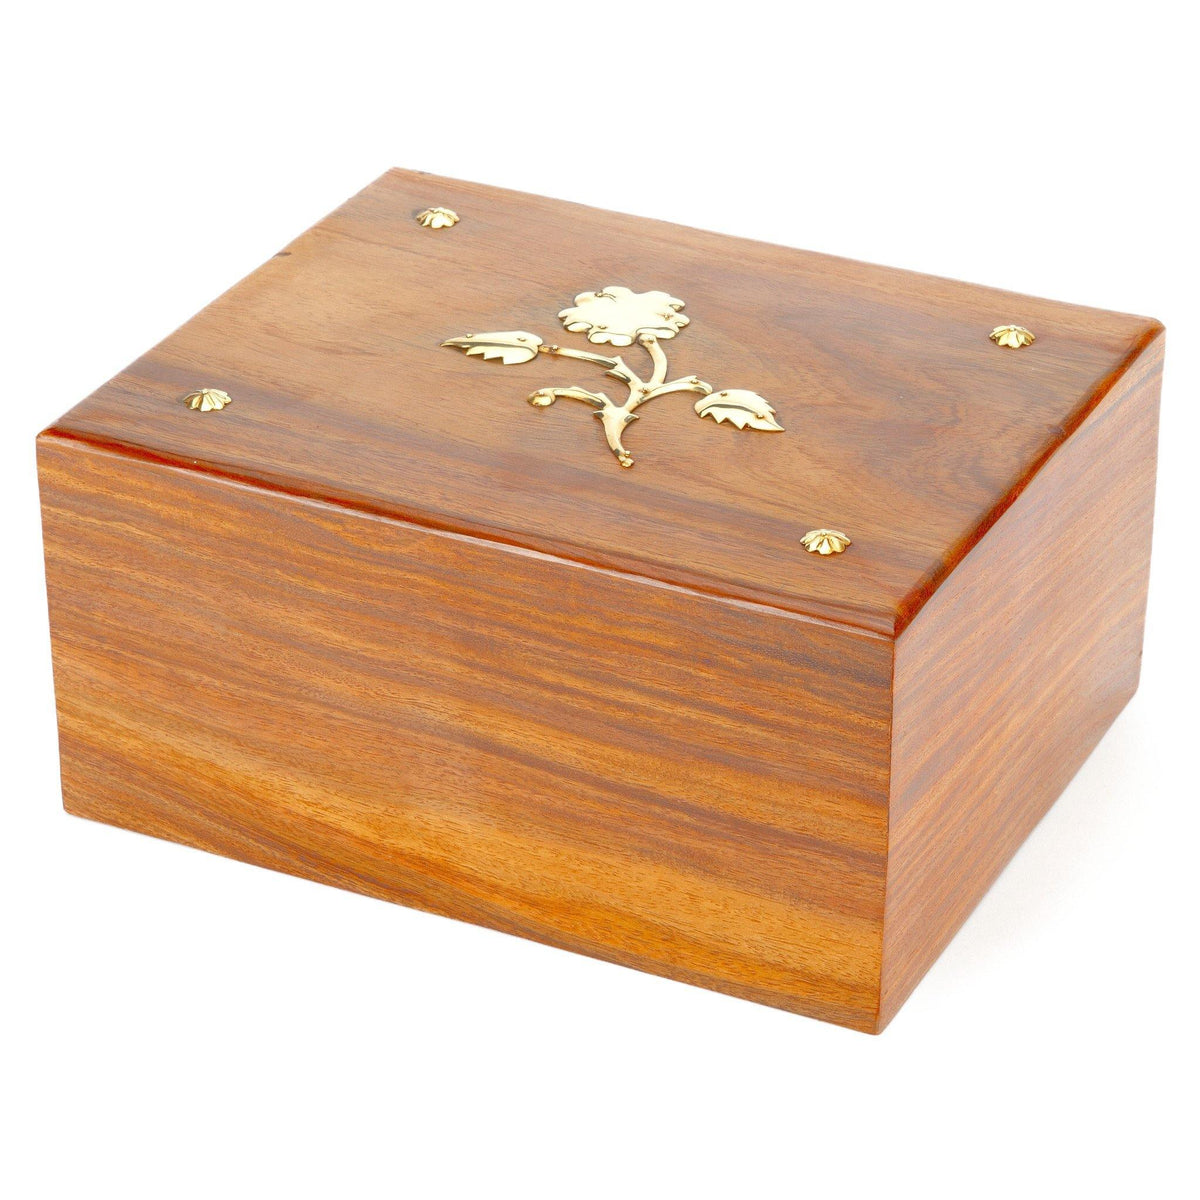 Hadley Wooden Cremation Ashes Urn - Urns UK